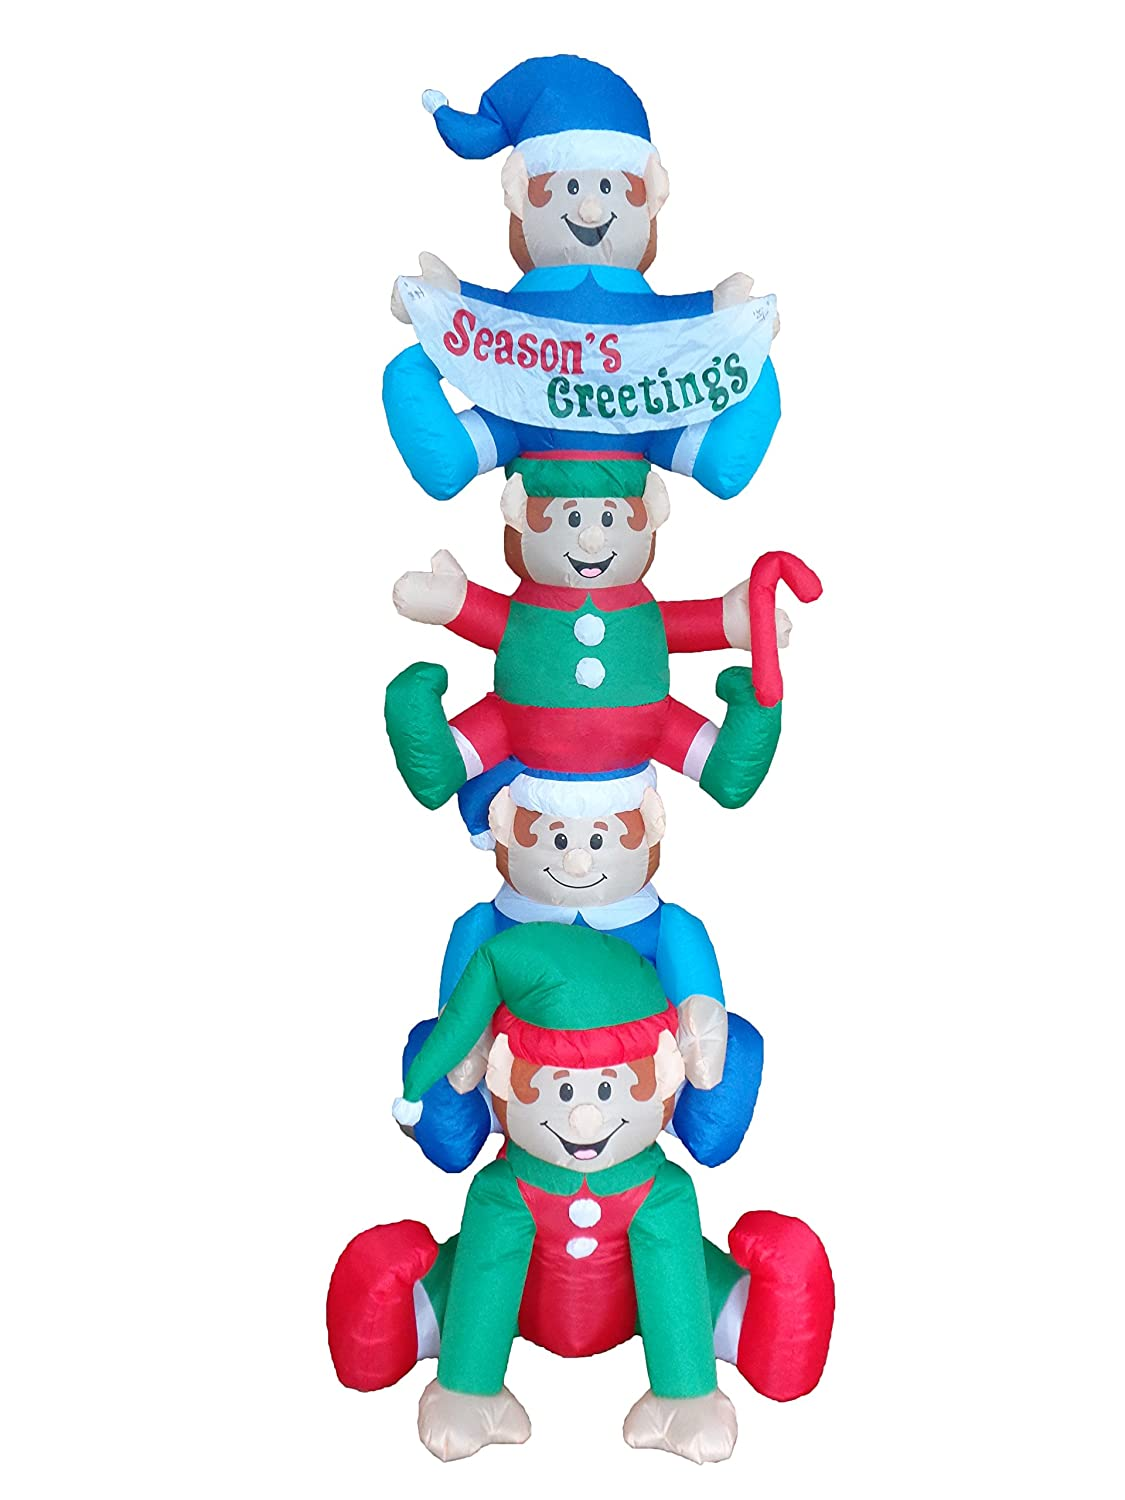 Amazon.com: BZB Goods 8 Foot Tall Christmas Inflatable Stacking ...